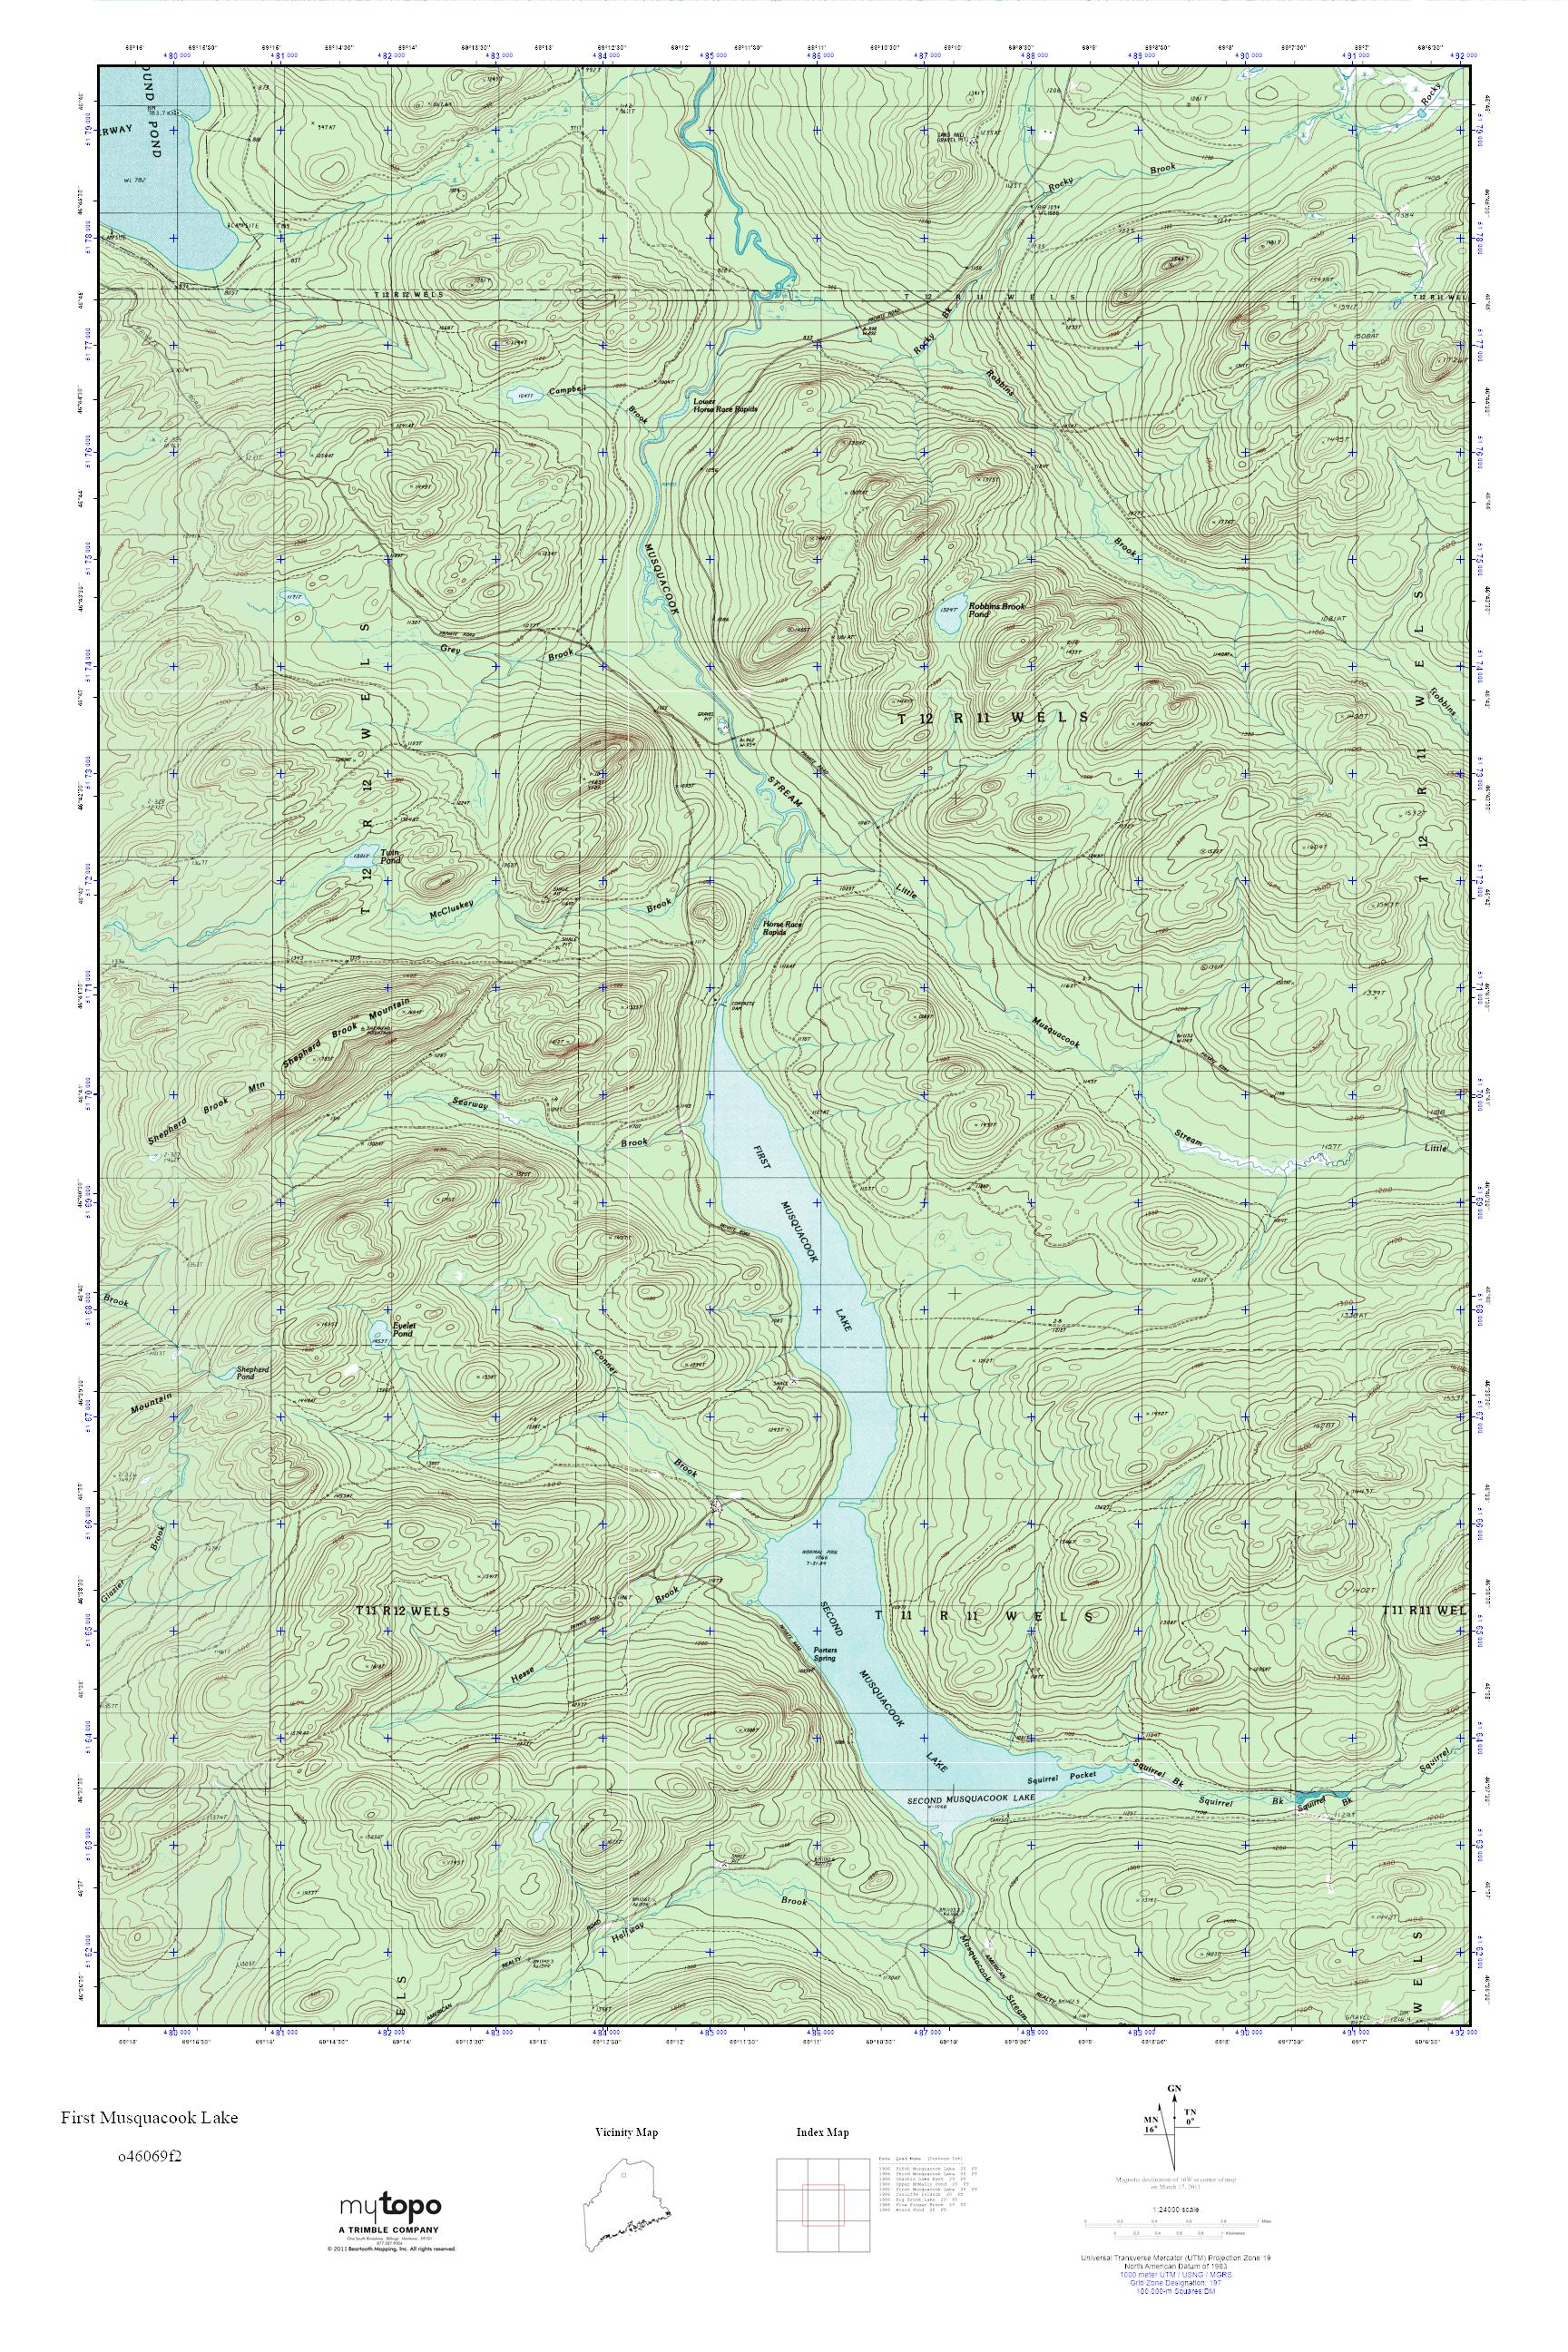 Topo Map Of Maine.Mytopo First Musquacook Lake Maine Usgs Quad Topo Map